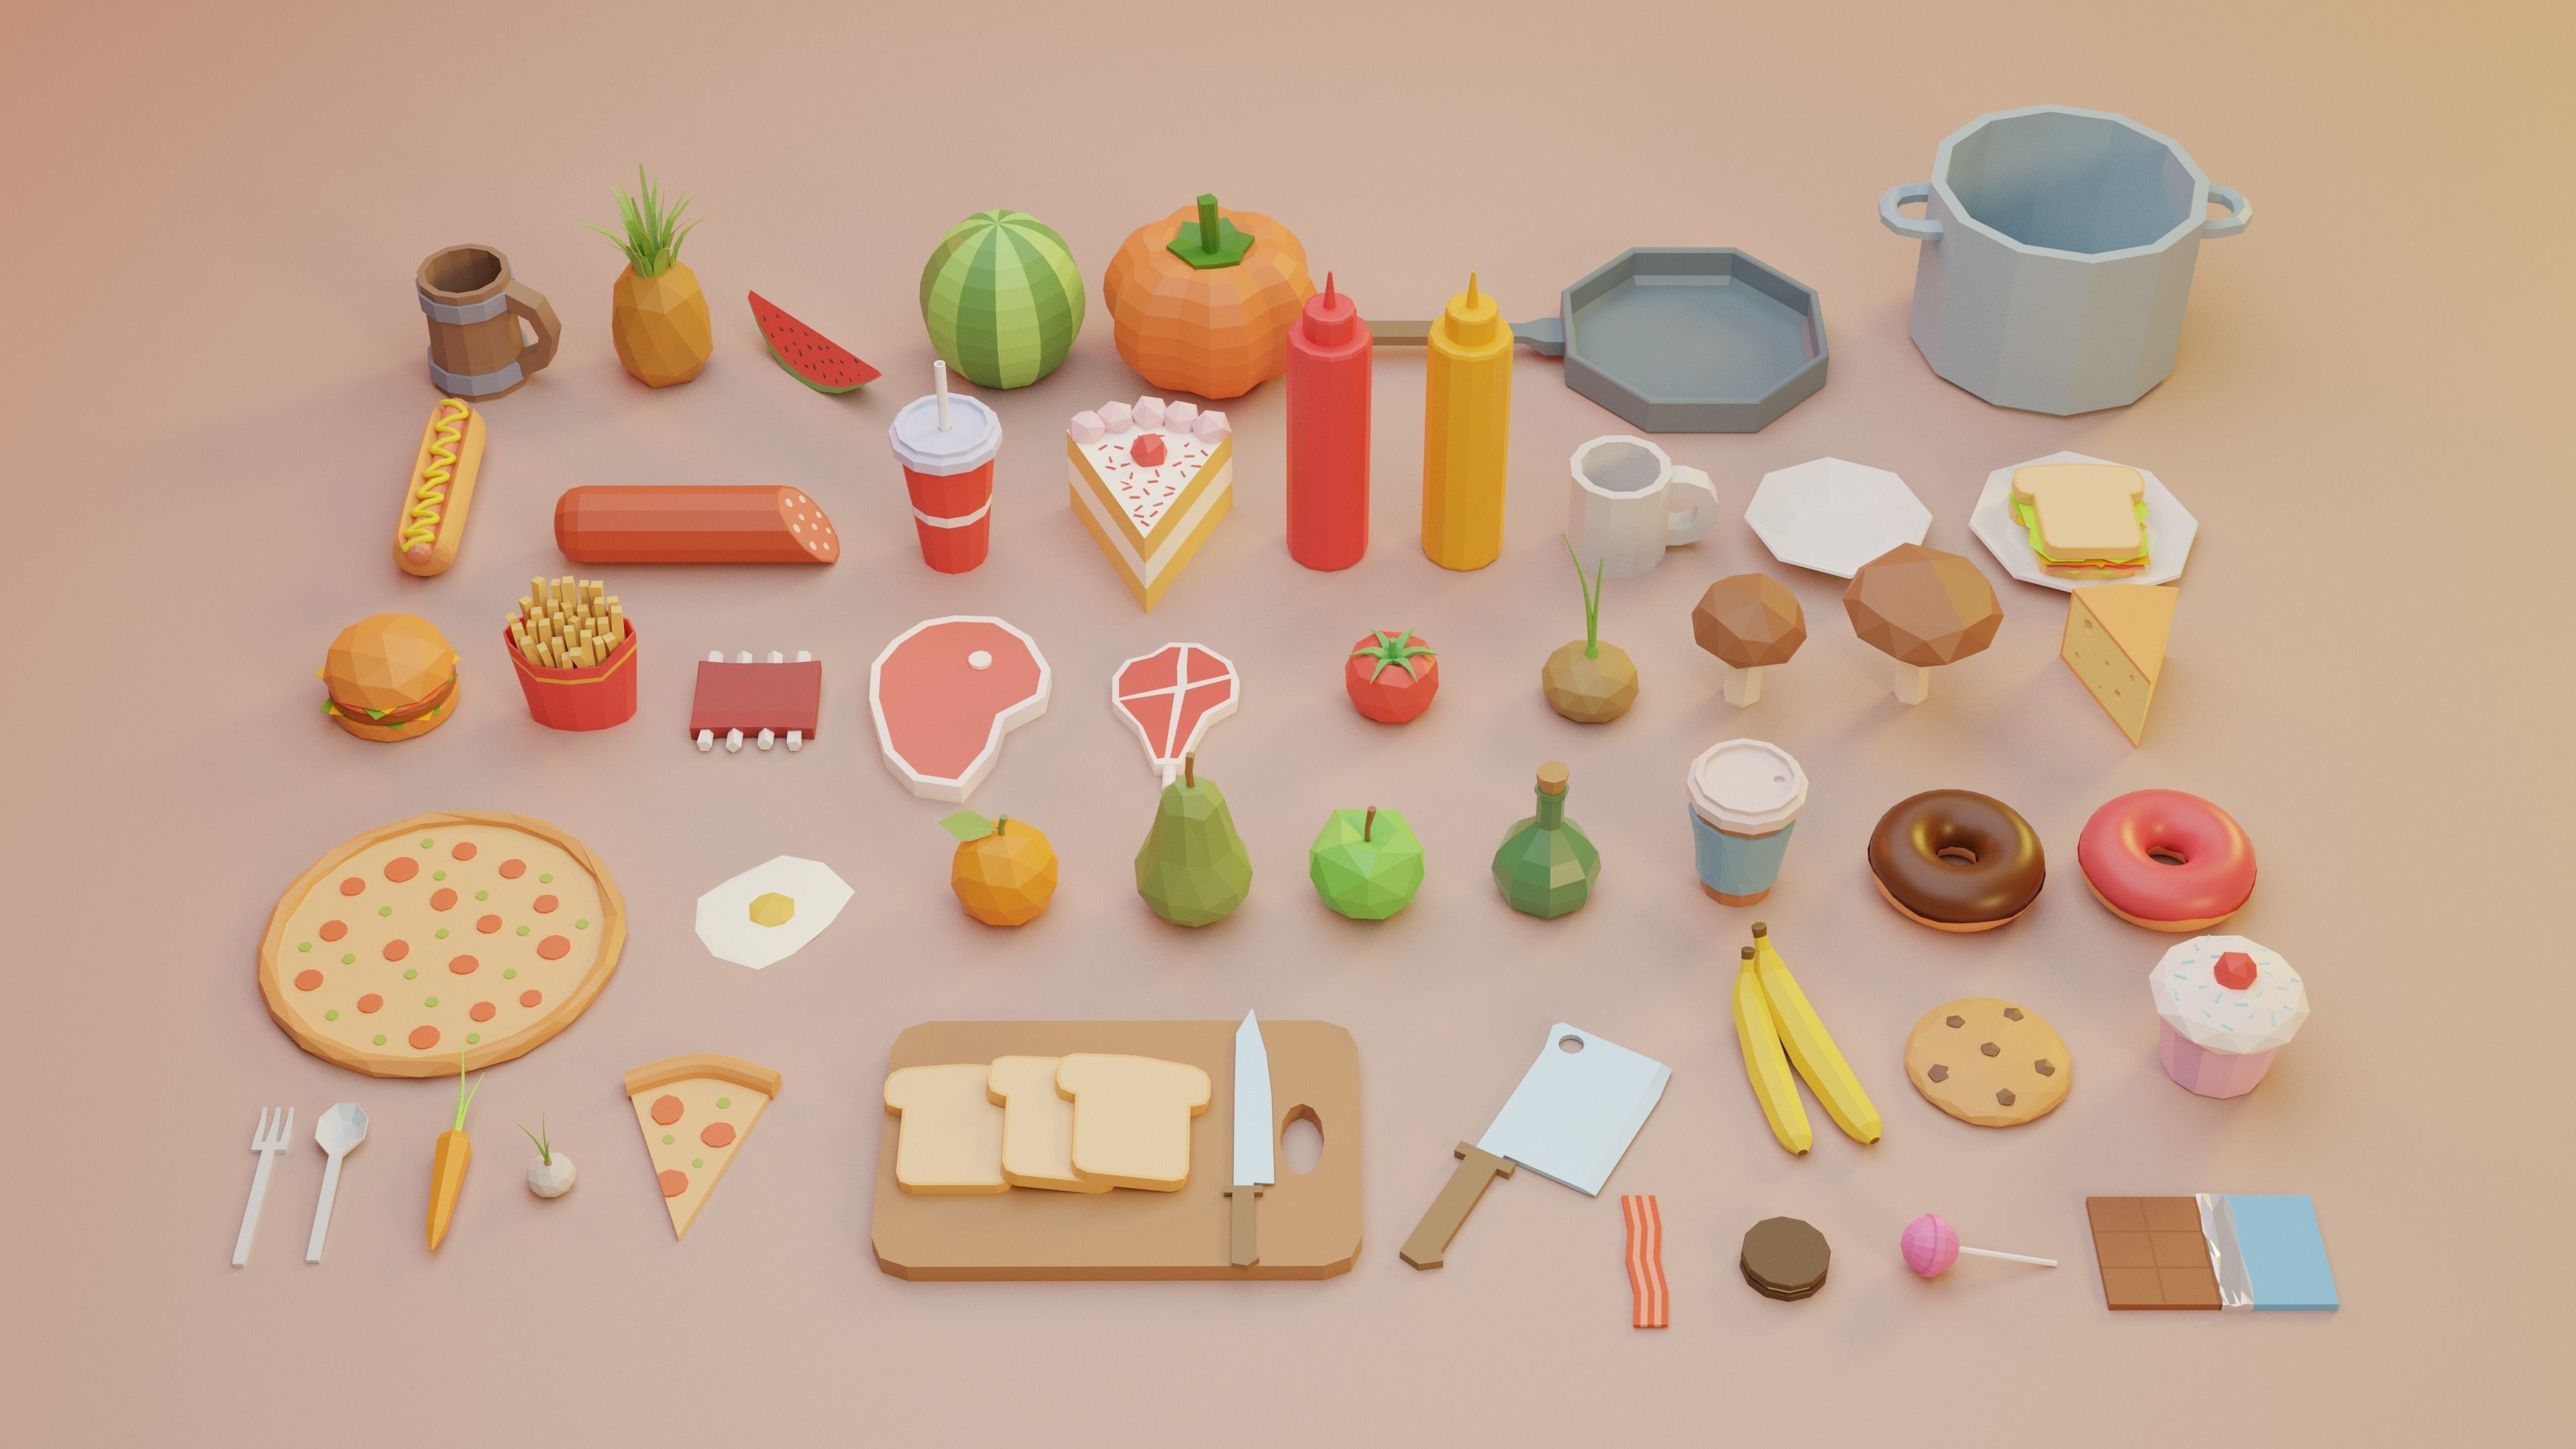 Low Poly Fruits and Vegetables Food Collection